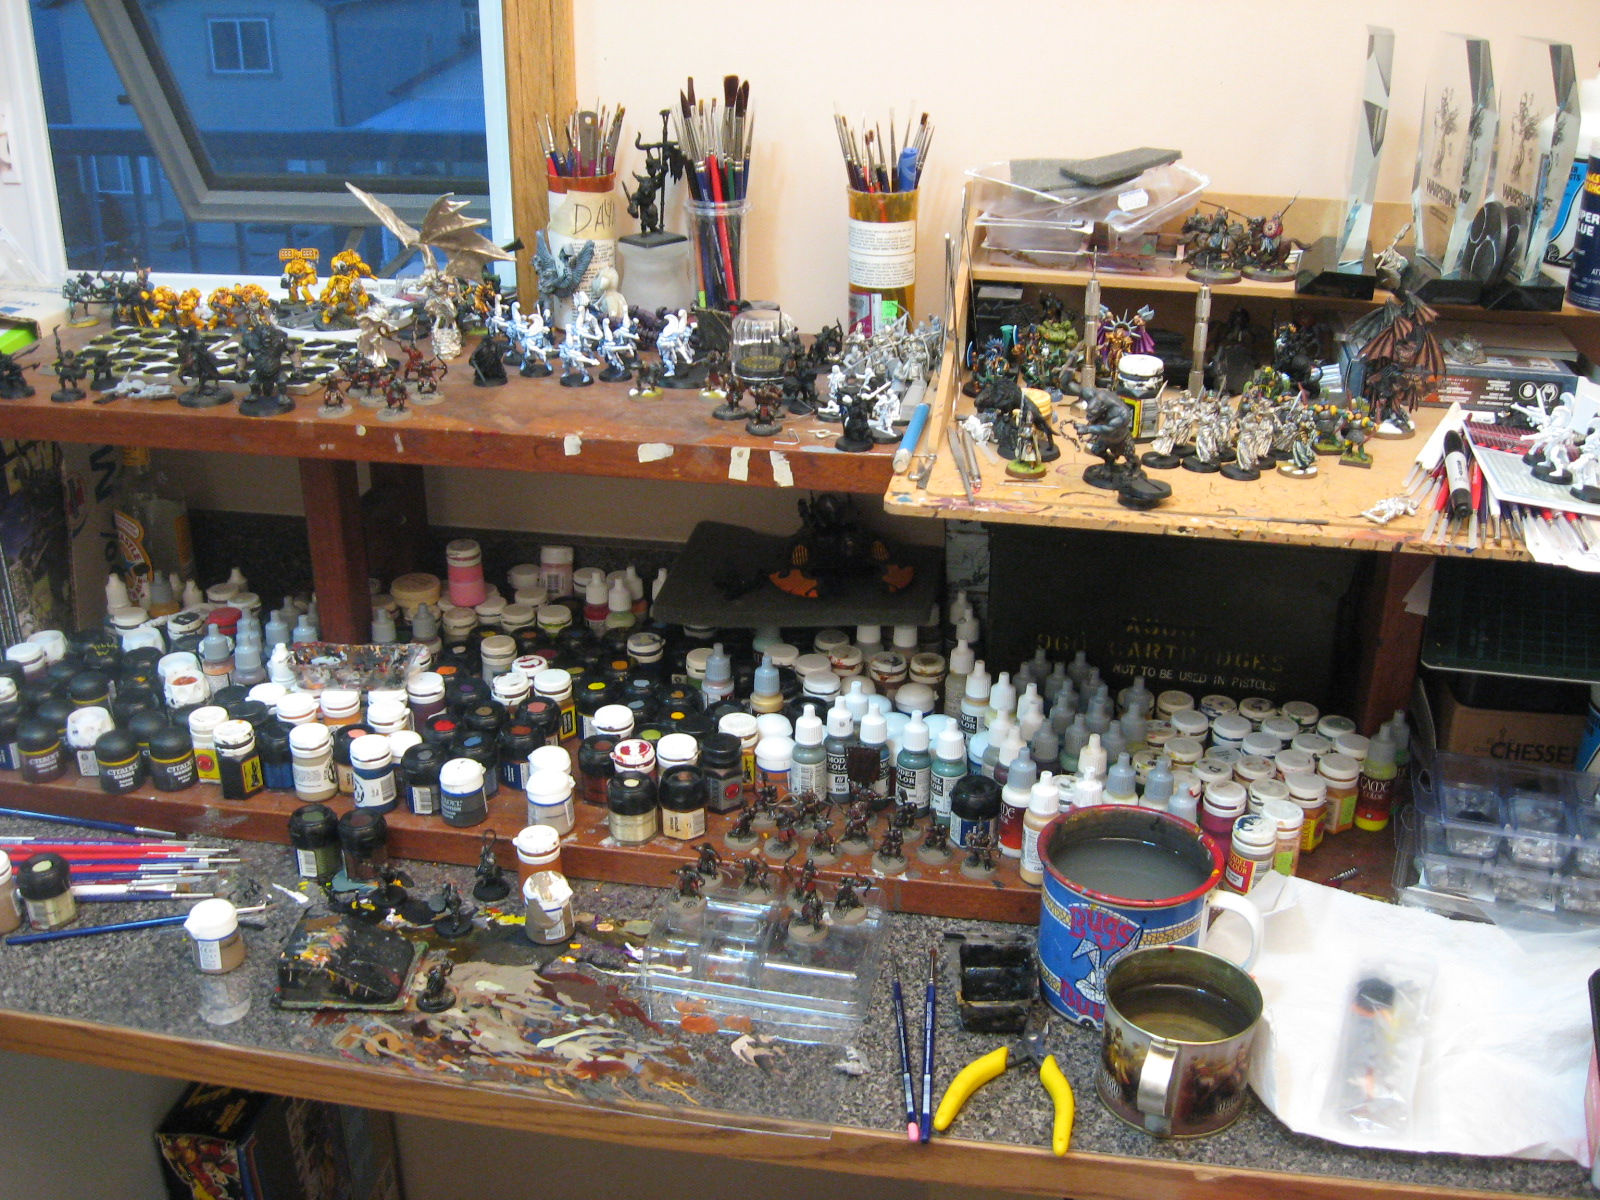 You Can See More Paints And Half Finished Projects Scattered About A Selection Of Oft Used Brushes Lies To The Left Dominant Features Items Cups